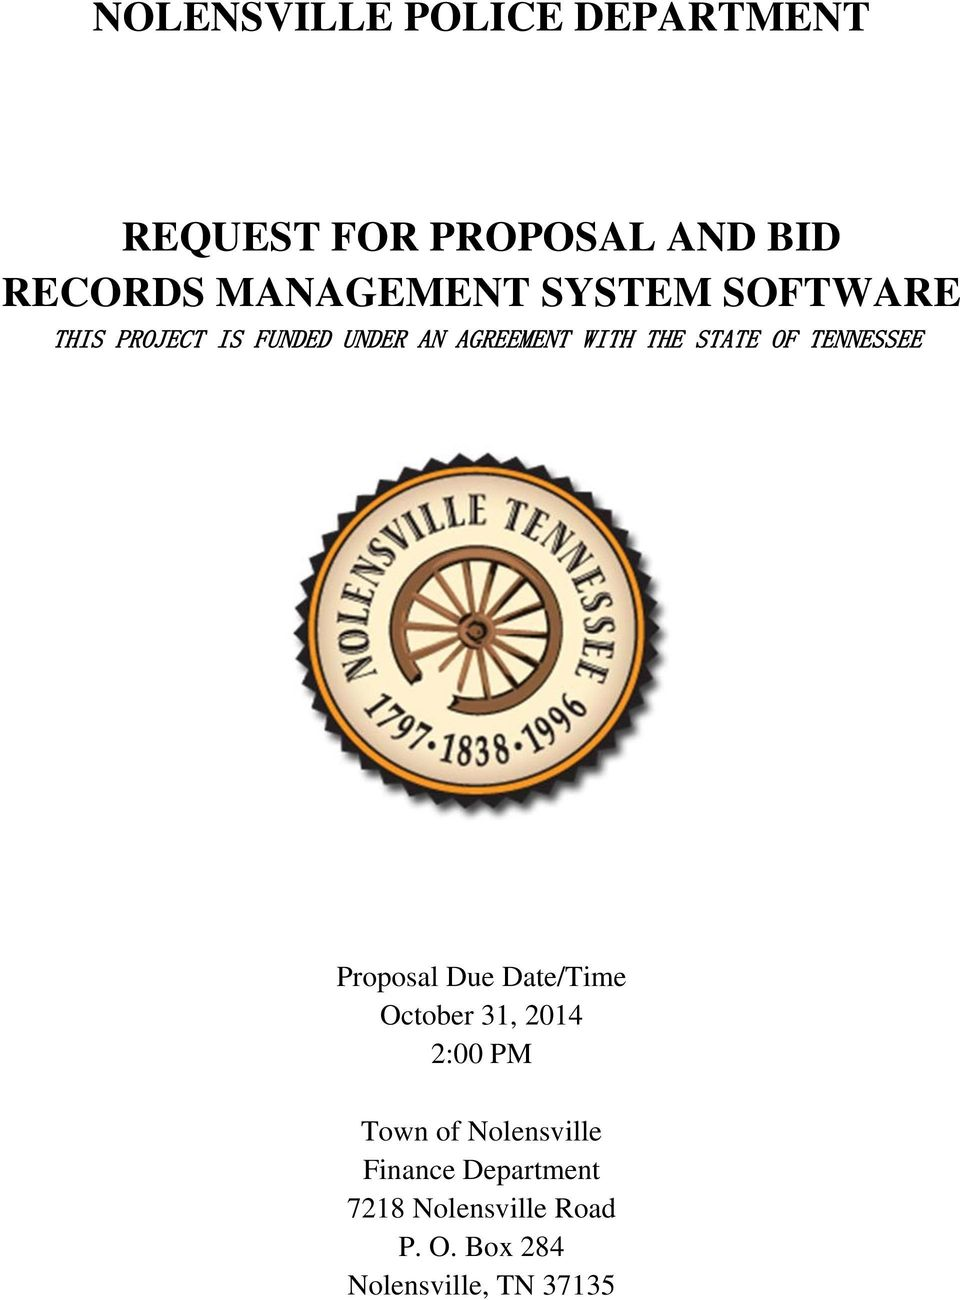 THE STATE OF TENNESSEE Proposal Due Date/Time October 31, 2014 2:00 PM Town